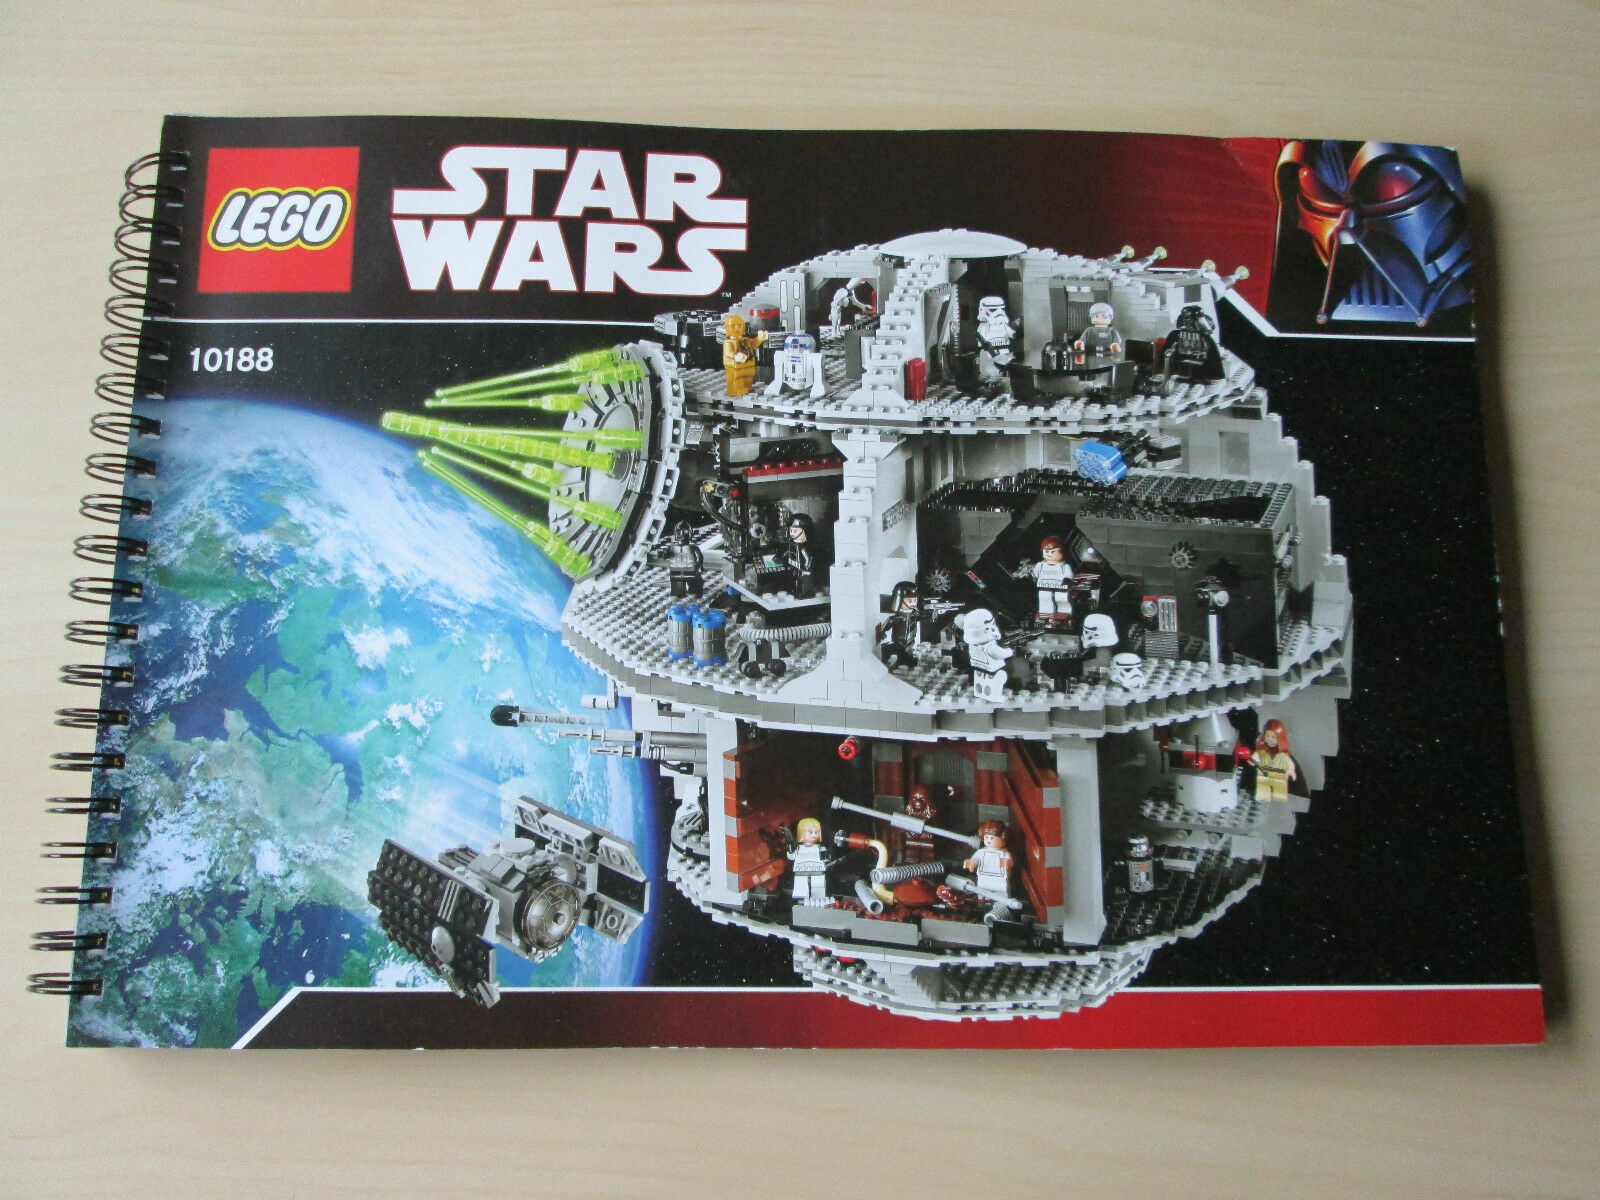 LEGO Bauanleitung Instruction Manual Star Wars 10188 Todesstern Death Star